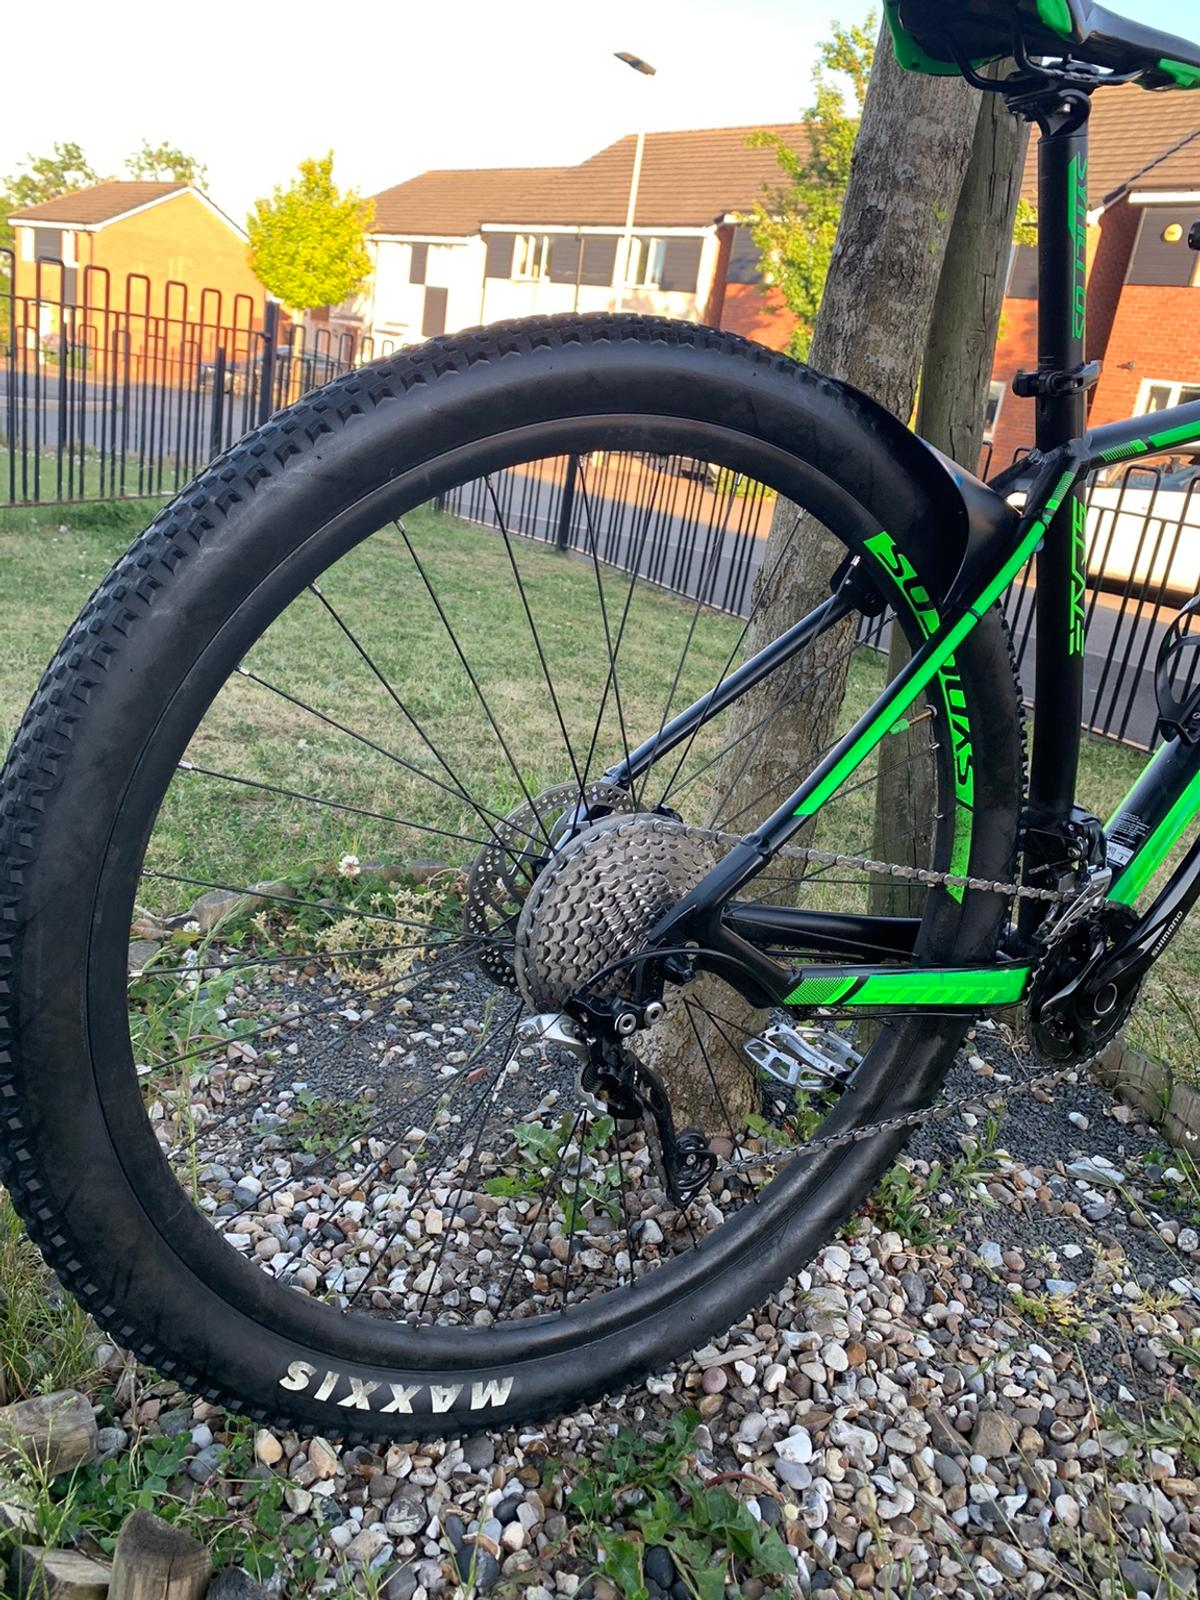 Scott scale 960 29er men's mountain bike Very good condition 29 inch wheels Large frame DMR pedals Serviced and ready to ride! Buyer will not be disappointed